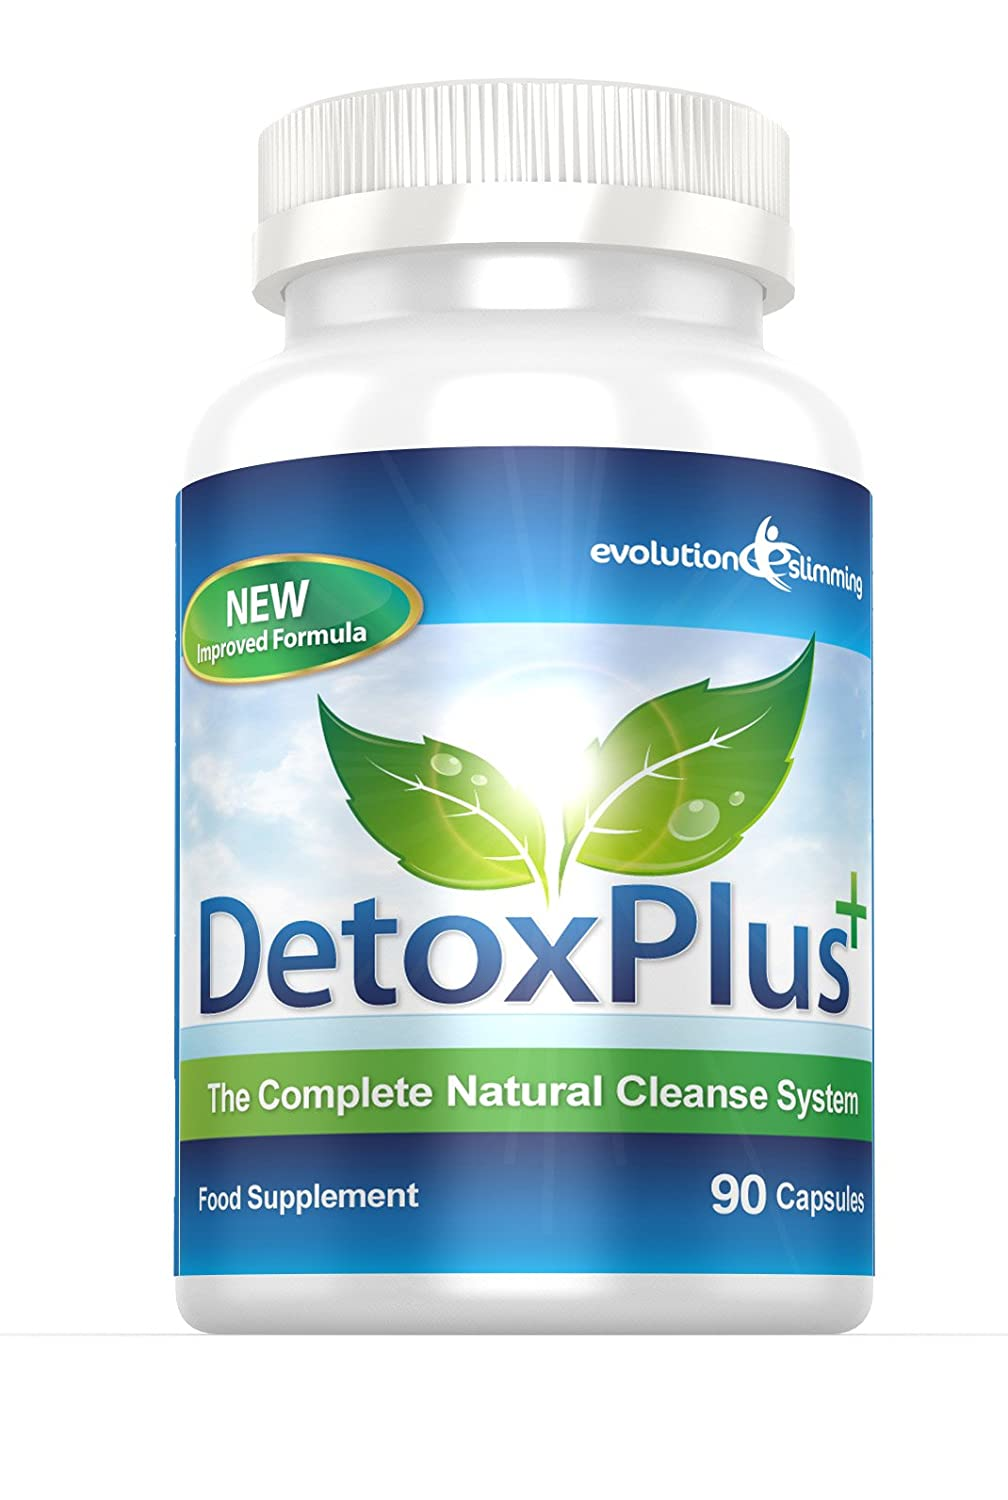 Detoxplus Plus Colon Cleanse Natural Cleansing System For Weight Loss And Bloating 90 Capsules By Evolution Slimming